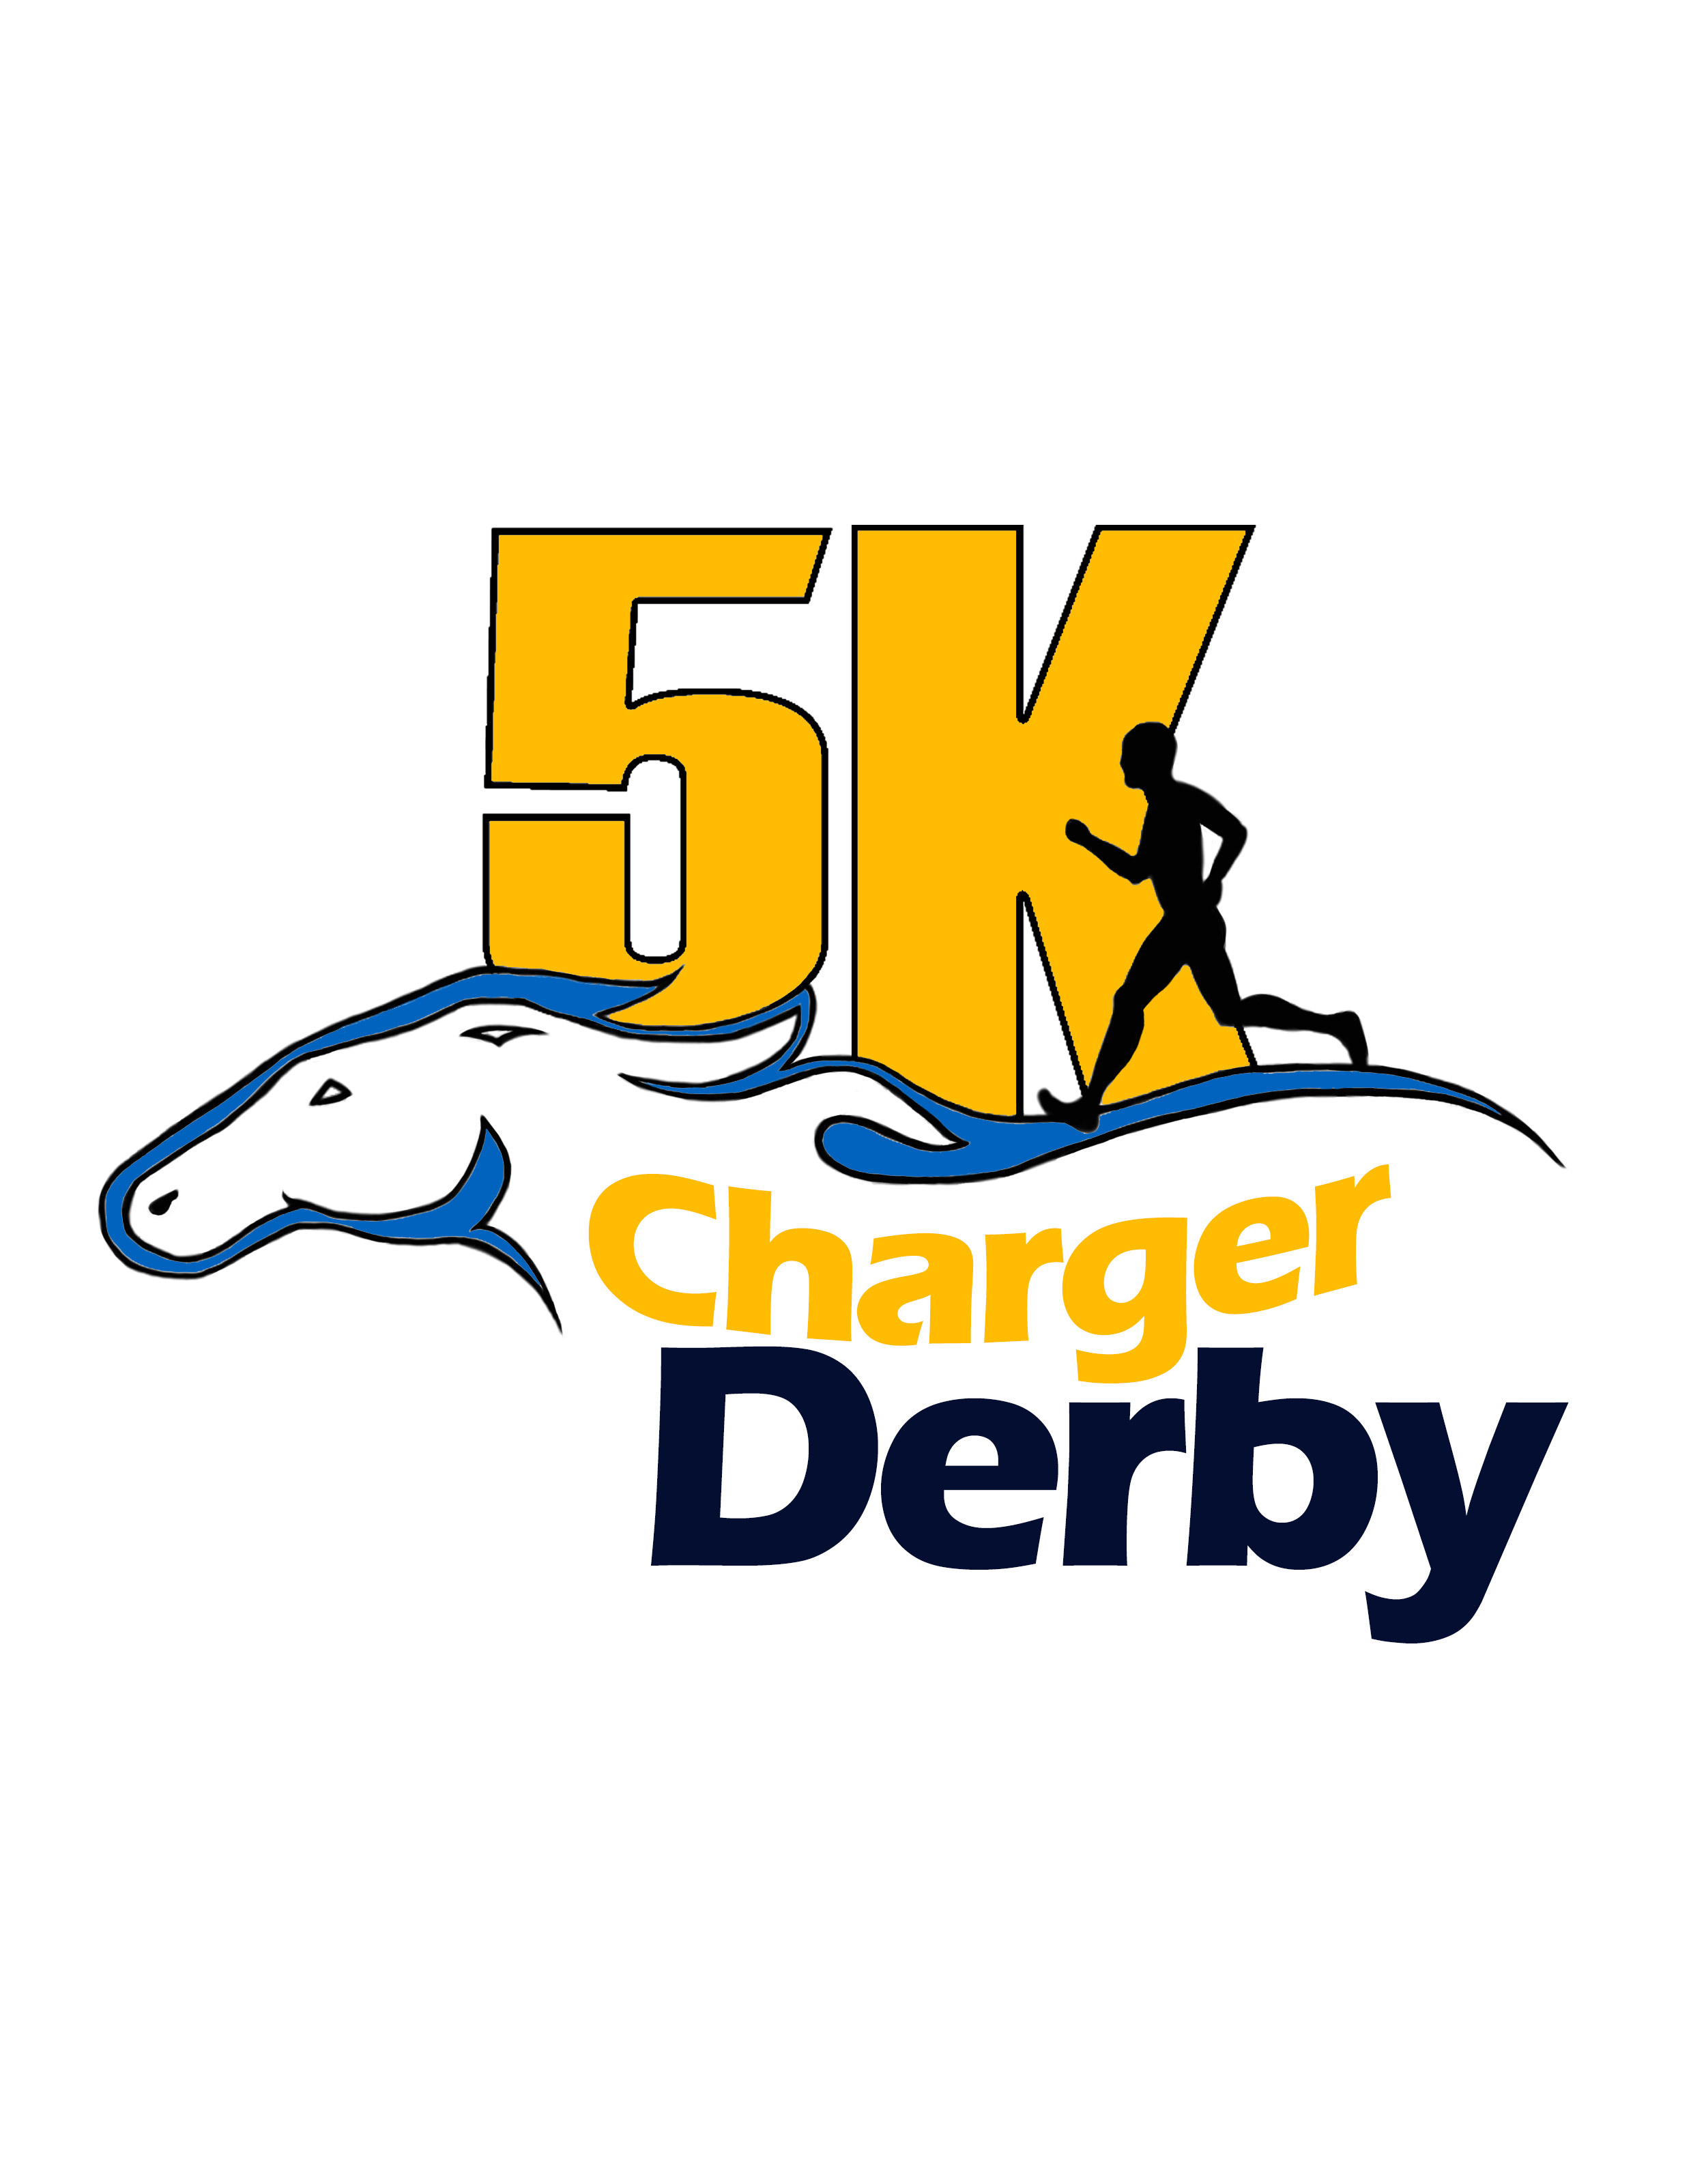 cary academy charger derby 5k cary nc 2018 05 05